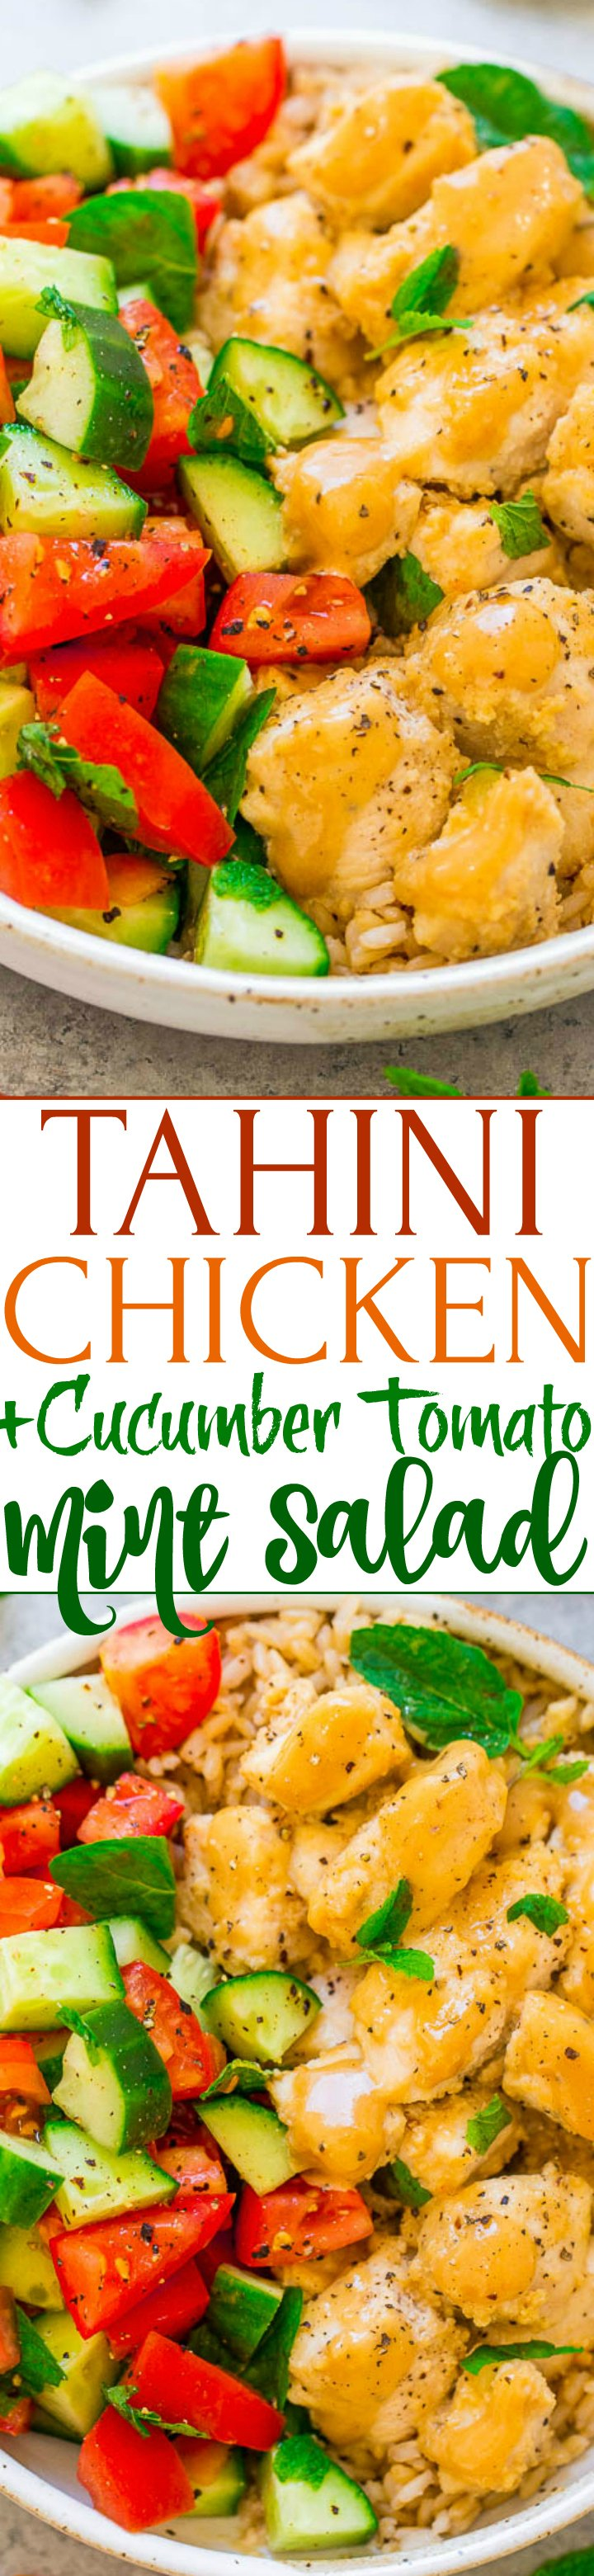 Tahini Chicken with Cucumber, Tomato, and Mint Salad - Juicy chicken coated in a flavorful TAHINI sauce with a zesty MINT salad on the side!! EASY, ready in 20 minutes, HEALTHY, and so tasty!!